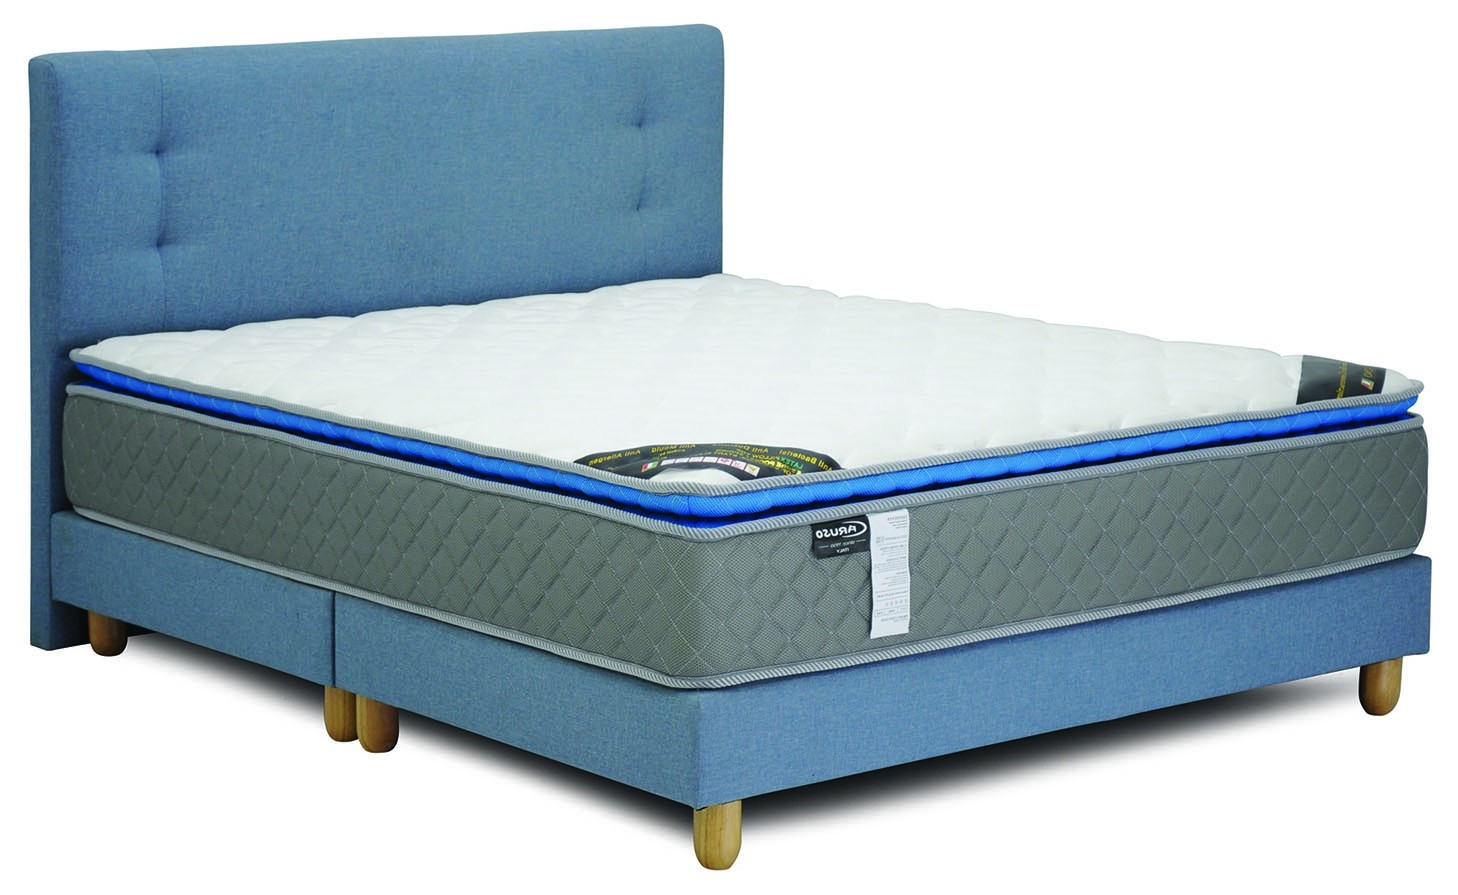 Caruso Package Caruso Latex Spring Mattress Suri Bedframe King